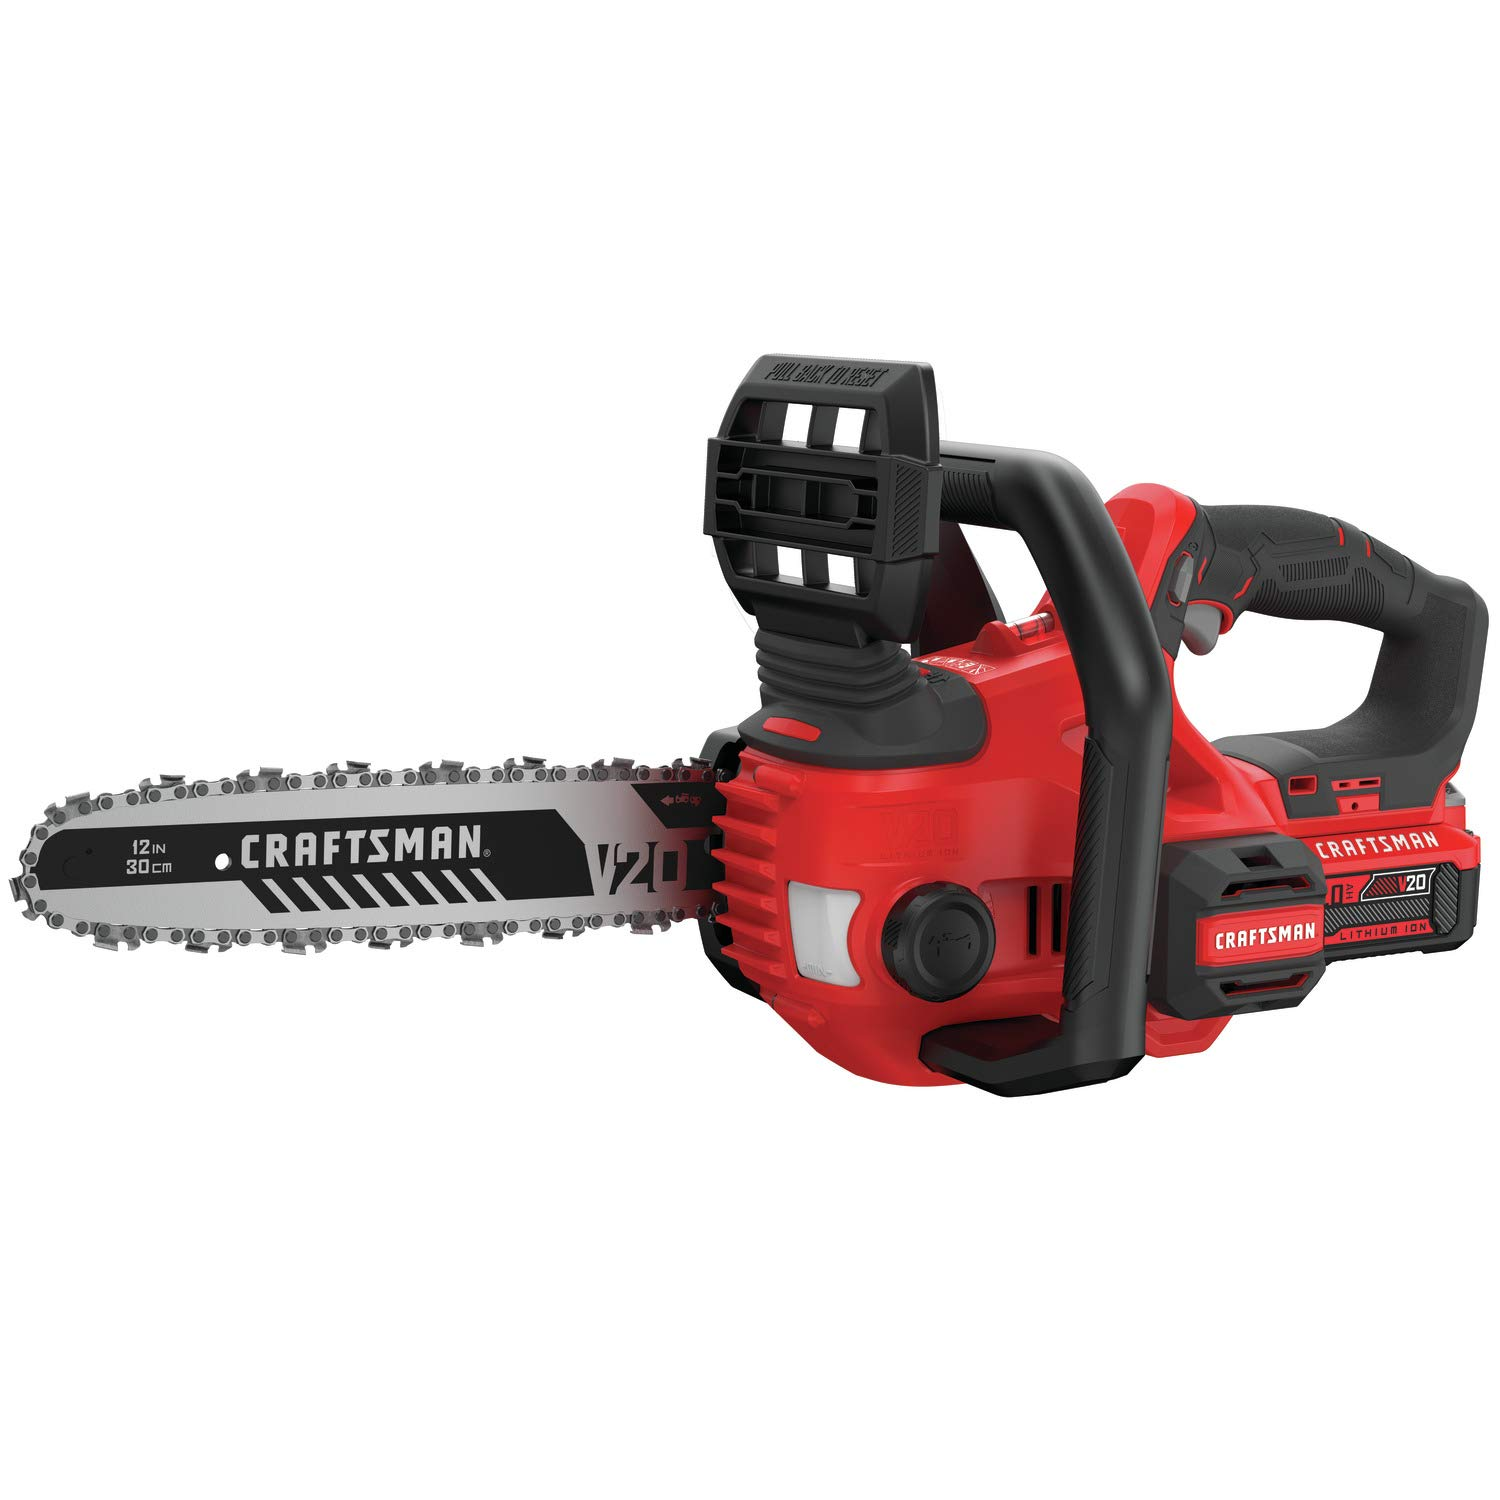 CRAFTSMAN V20 Cordless Chainsaw, 12-Inch CMCCS620M1